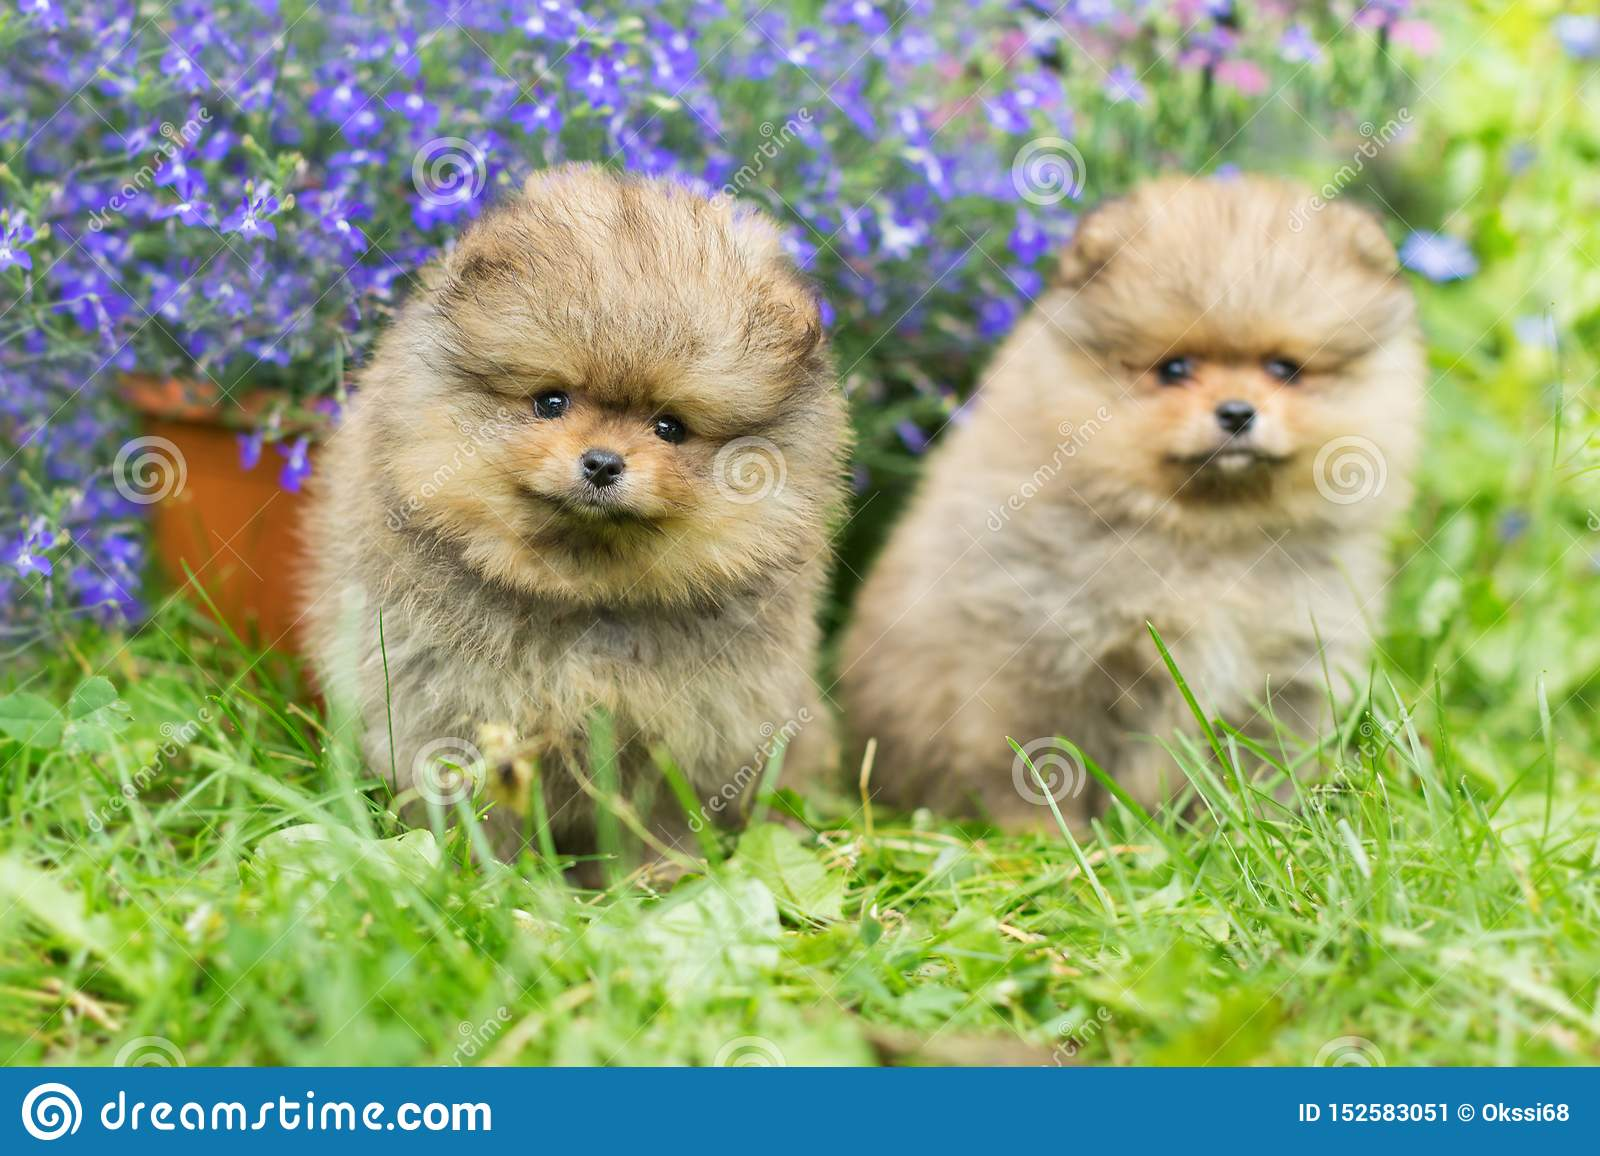 Two little Spitz puppies walking